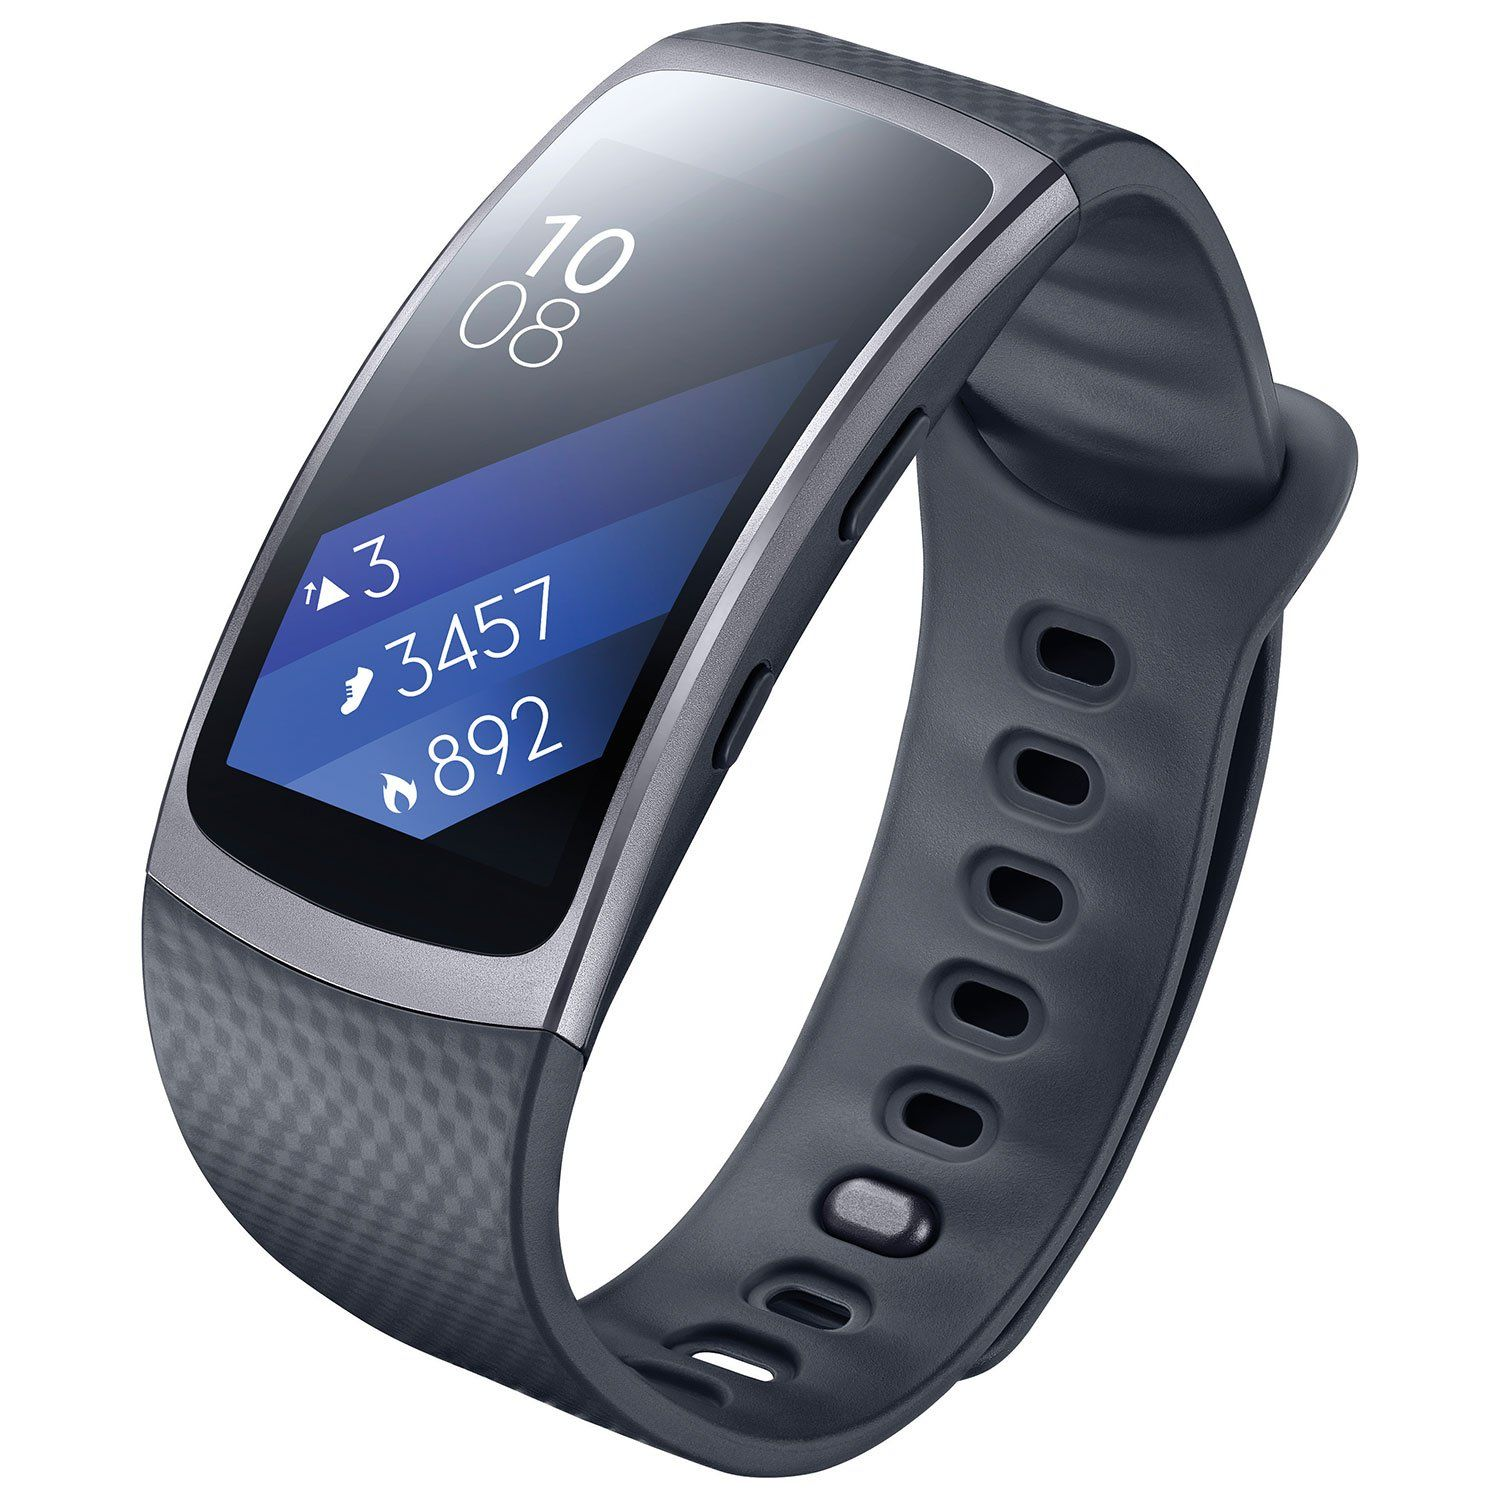 SAMSUNG Gear Fit2 SMR360 Sports Band Smartwatch / iPhone